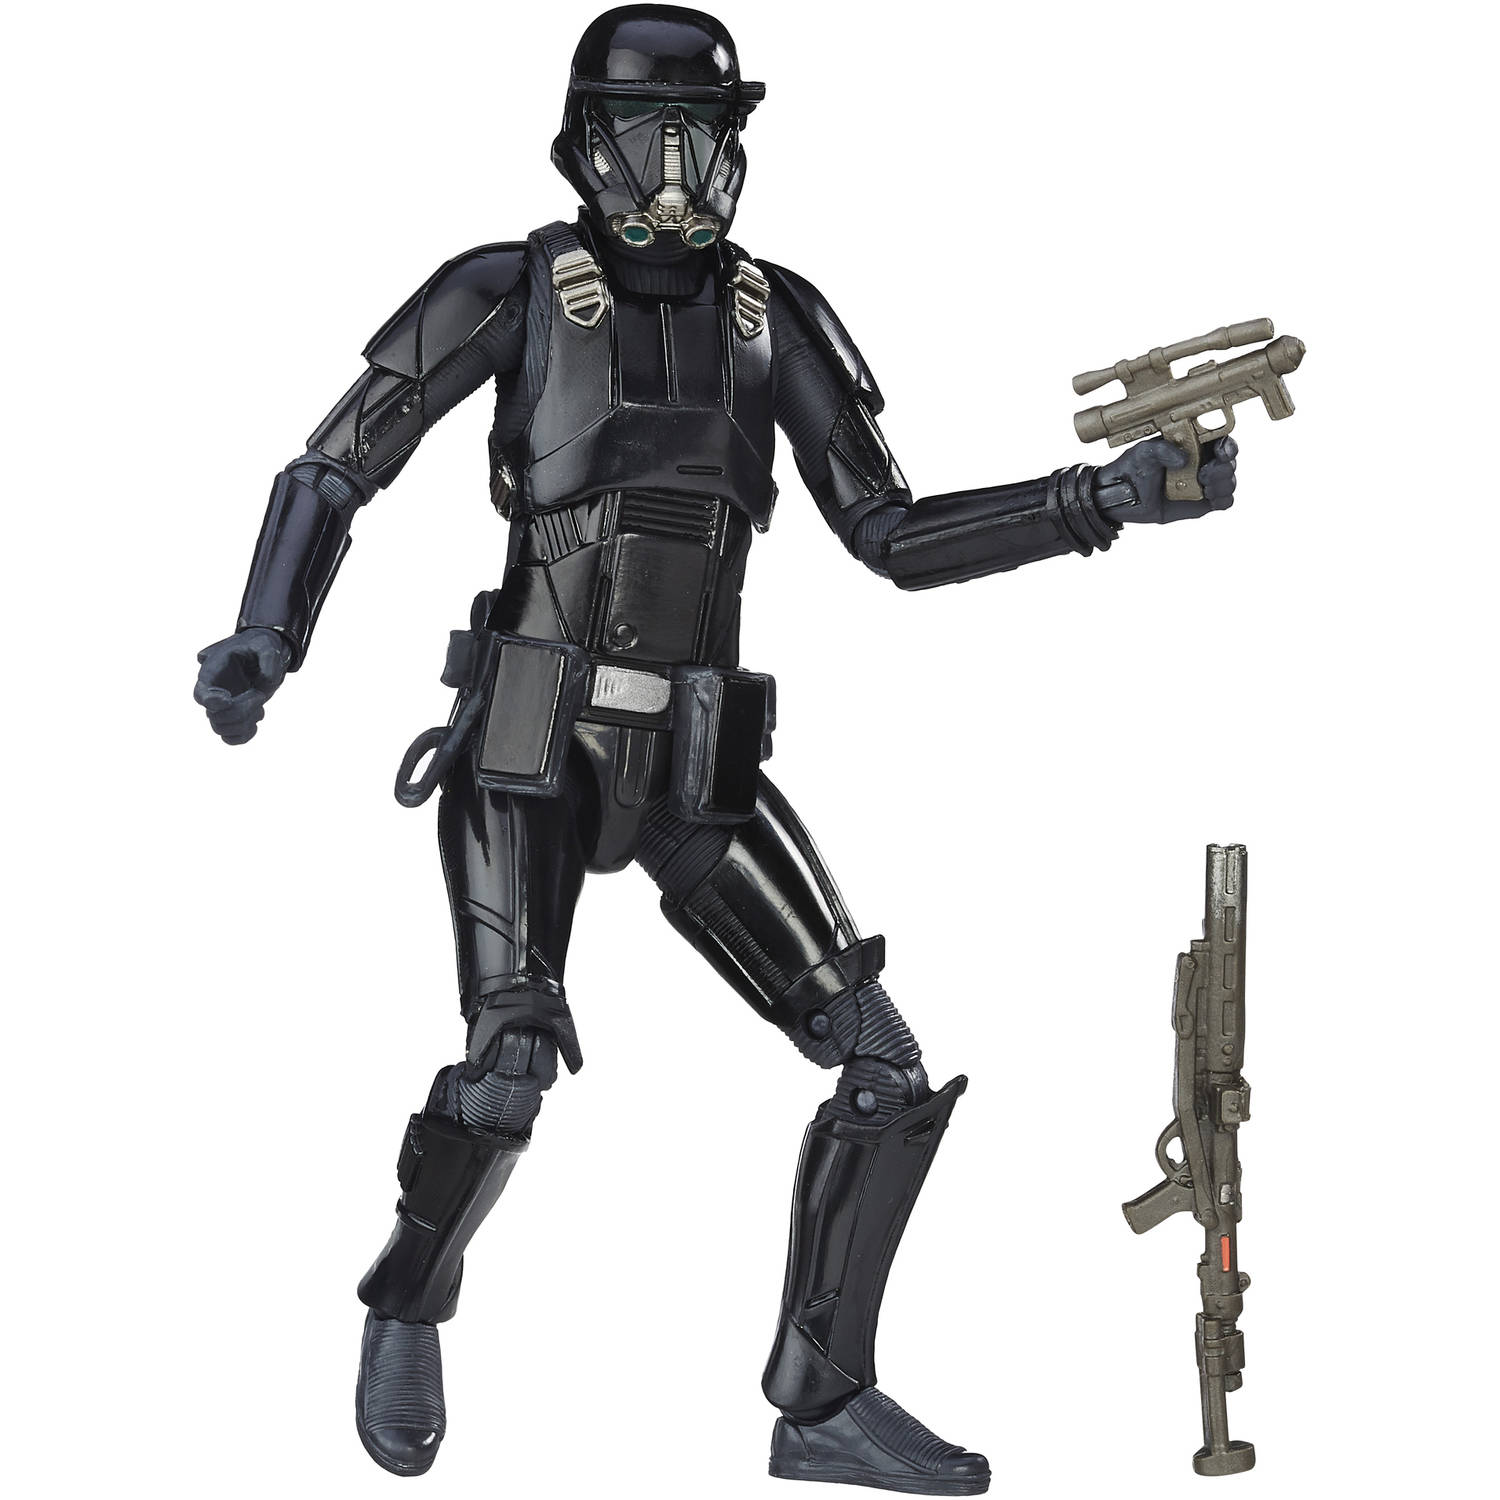 Star Wars The Black Series Rogue One Imperial Death Trooper